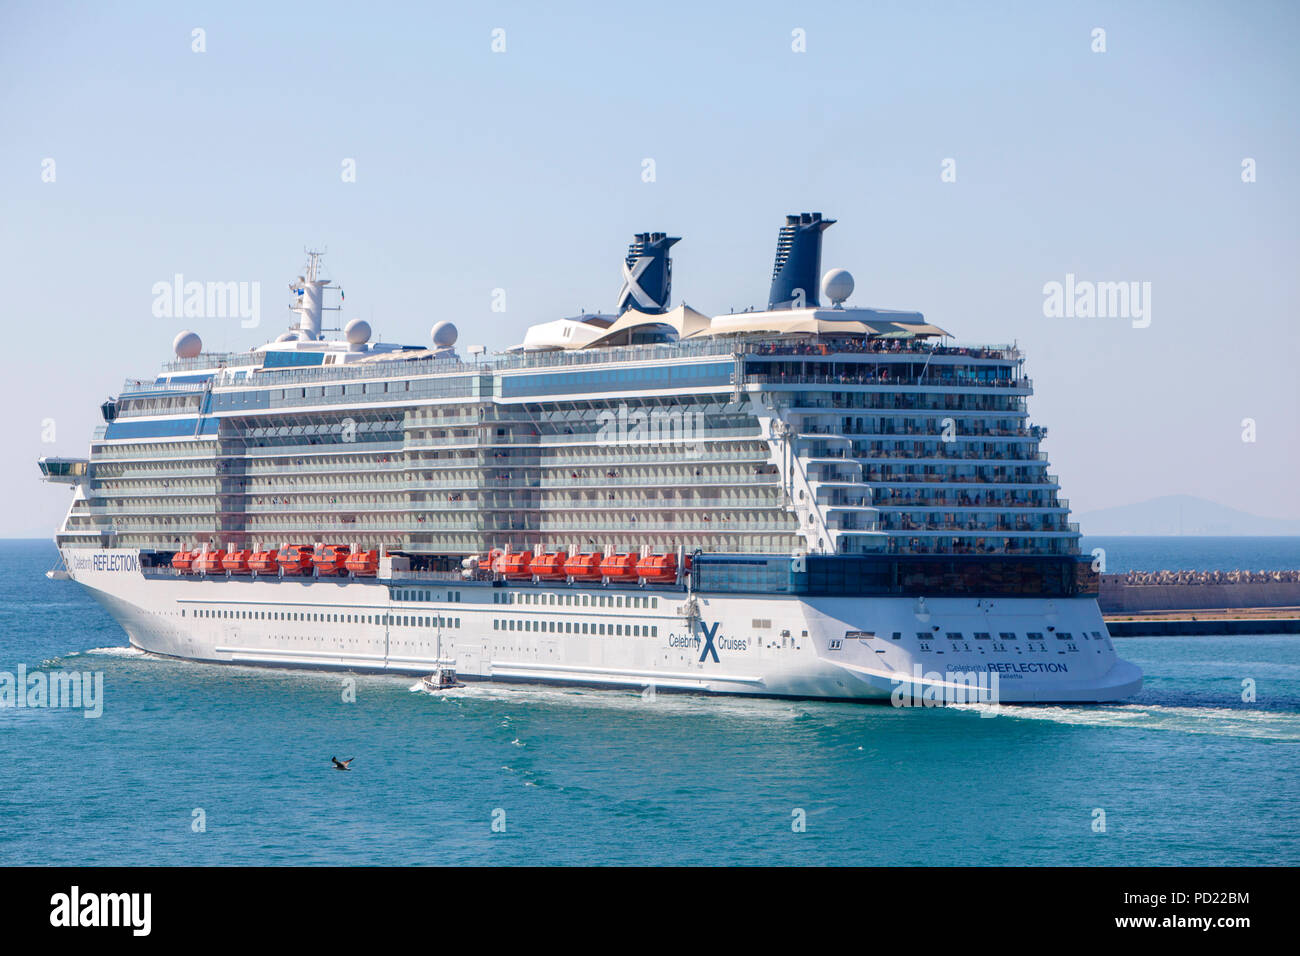 September 18th, 2019 - Cruise from Barcelona on the ...